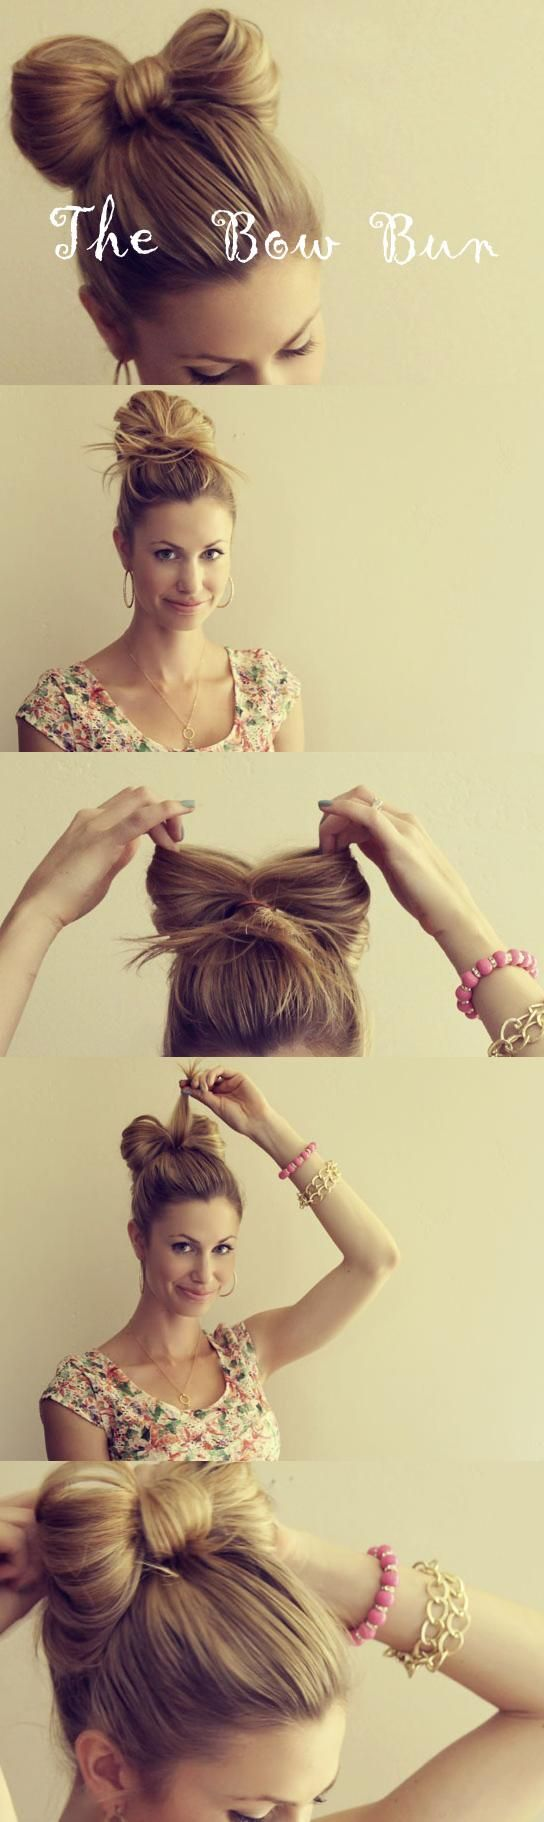 how to make a bow bun